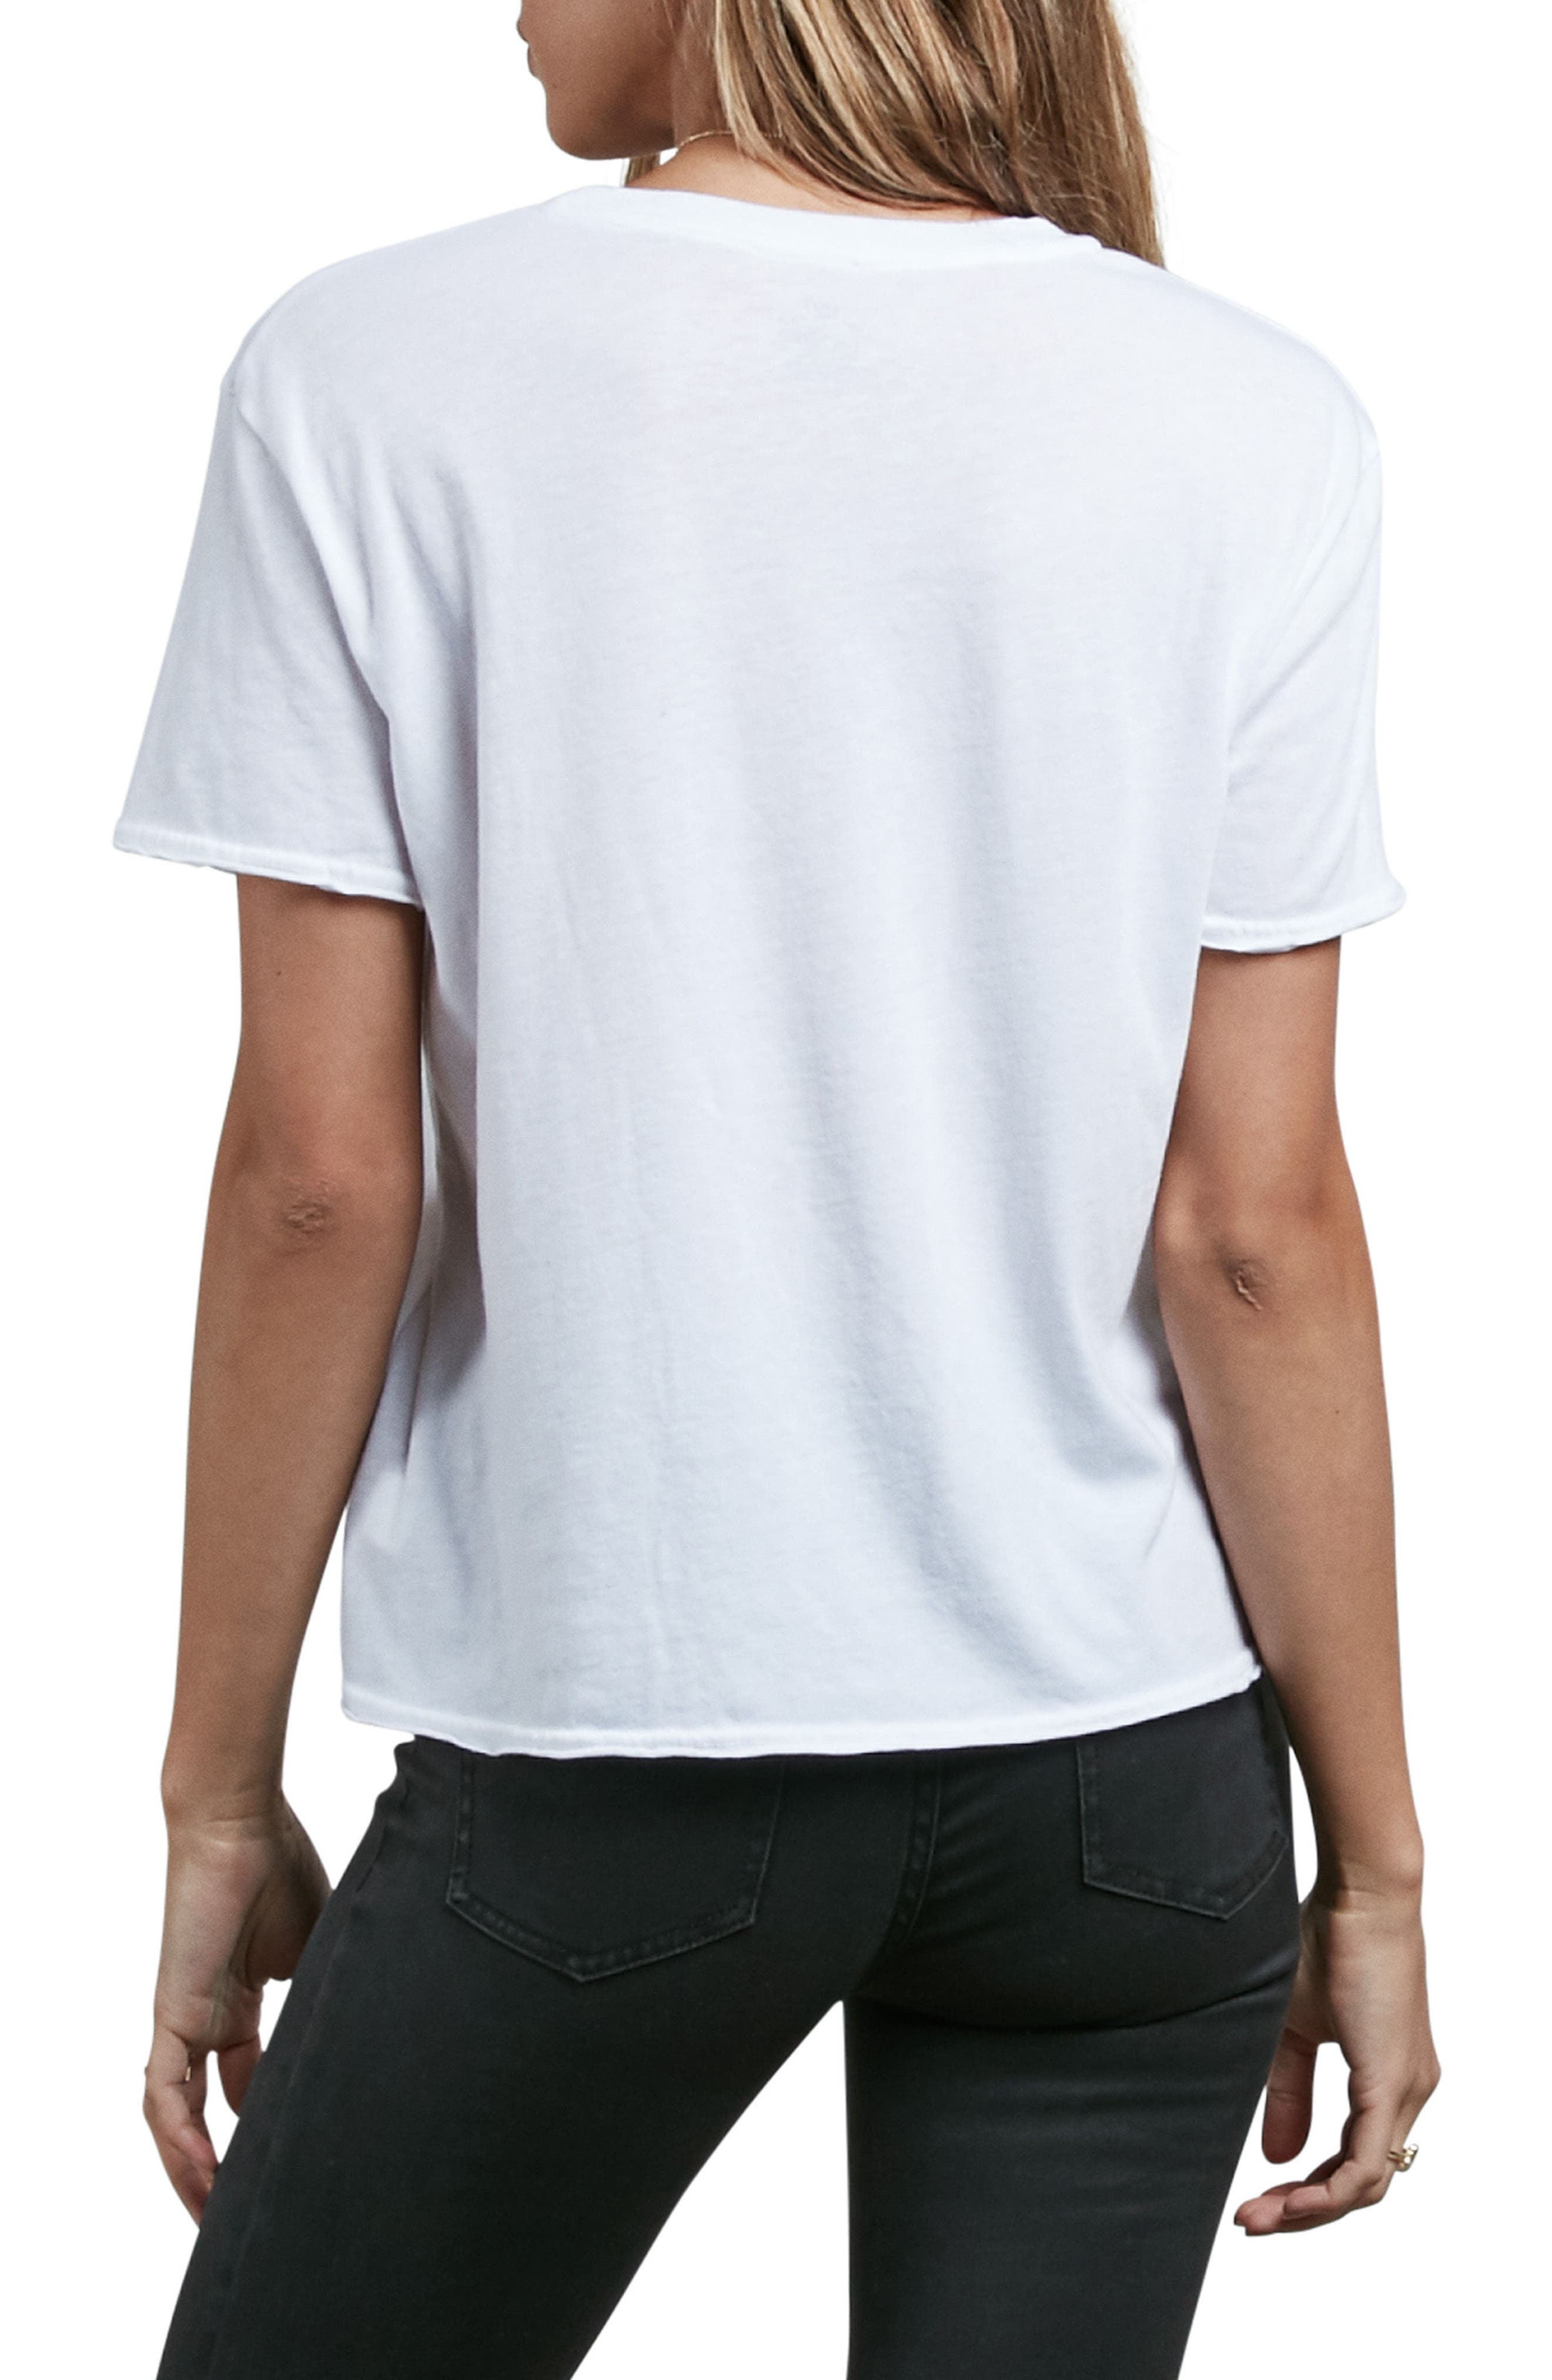 Main Stage Graphic Tee,                             Alternate thumbnail 2, color,                             White